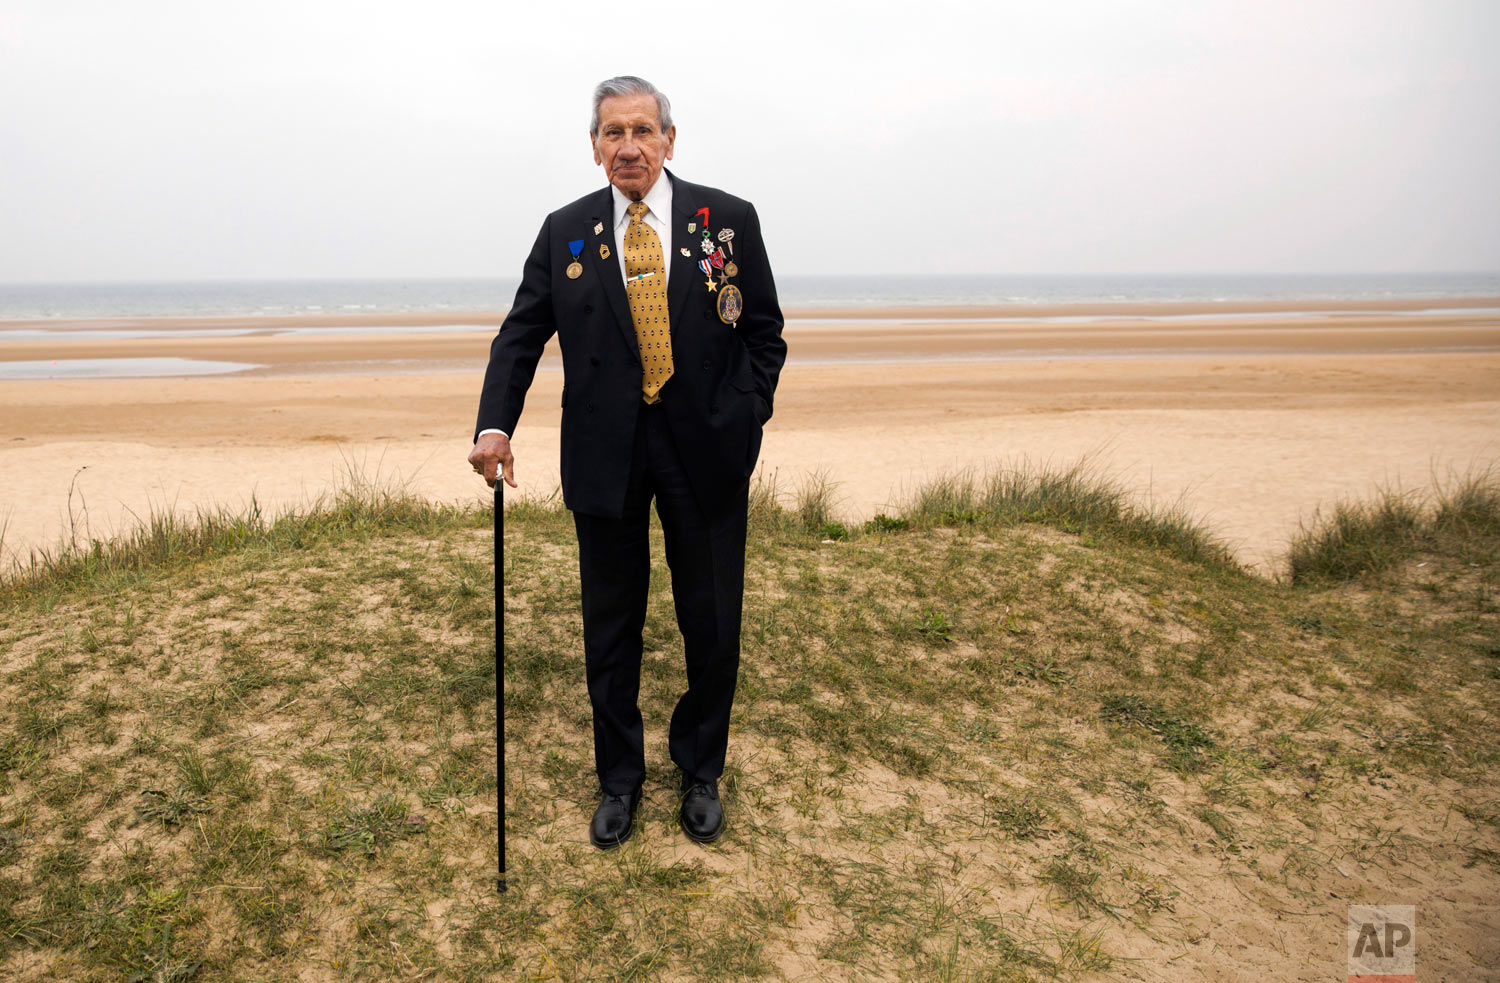 World War II and D-Day veteran Charles Norman Shay, from Indian Island, Maine, poses on a dune at Omaha Beach in Saint-Laurent-sur-Mer, Normandy, France, May 1, 2019. Shay was a combat medic on D-Day, assigned to an assault battalion in the first wave of attacks on D-Day, June 6, 1944. (AP Photo/Virginia Mayo)